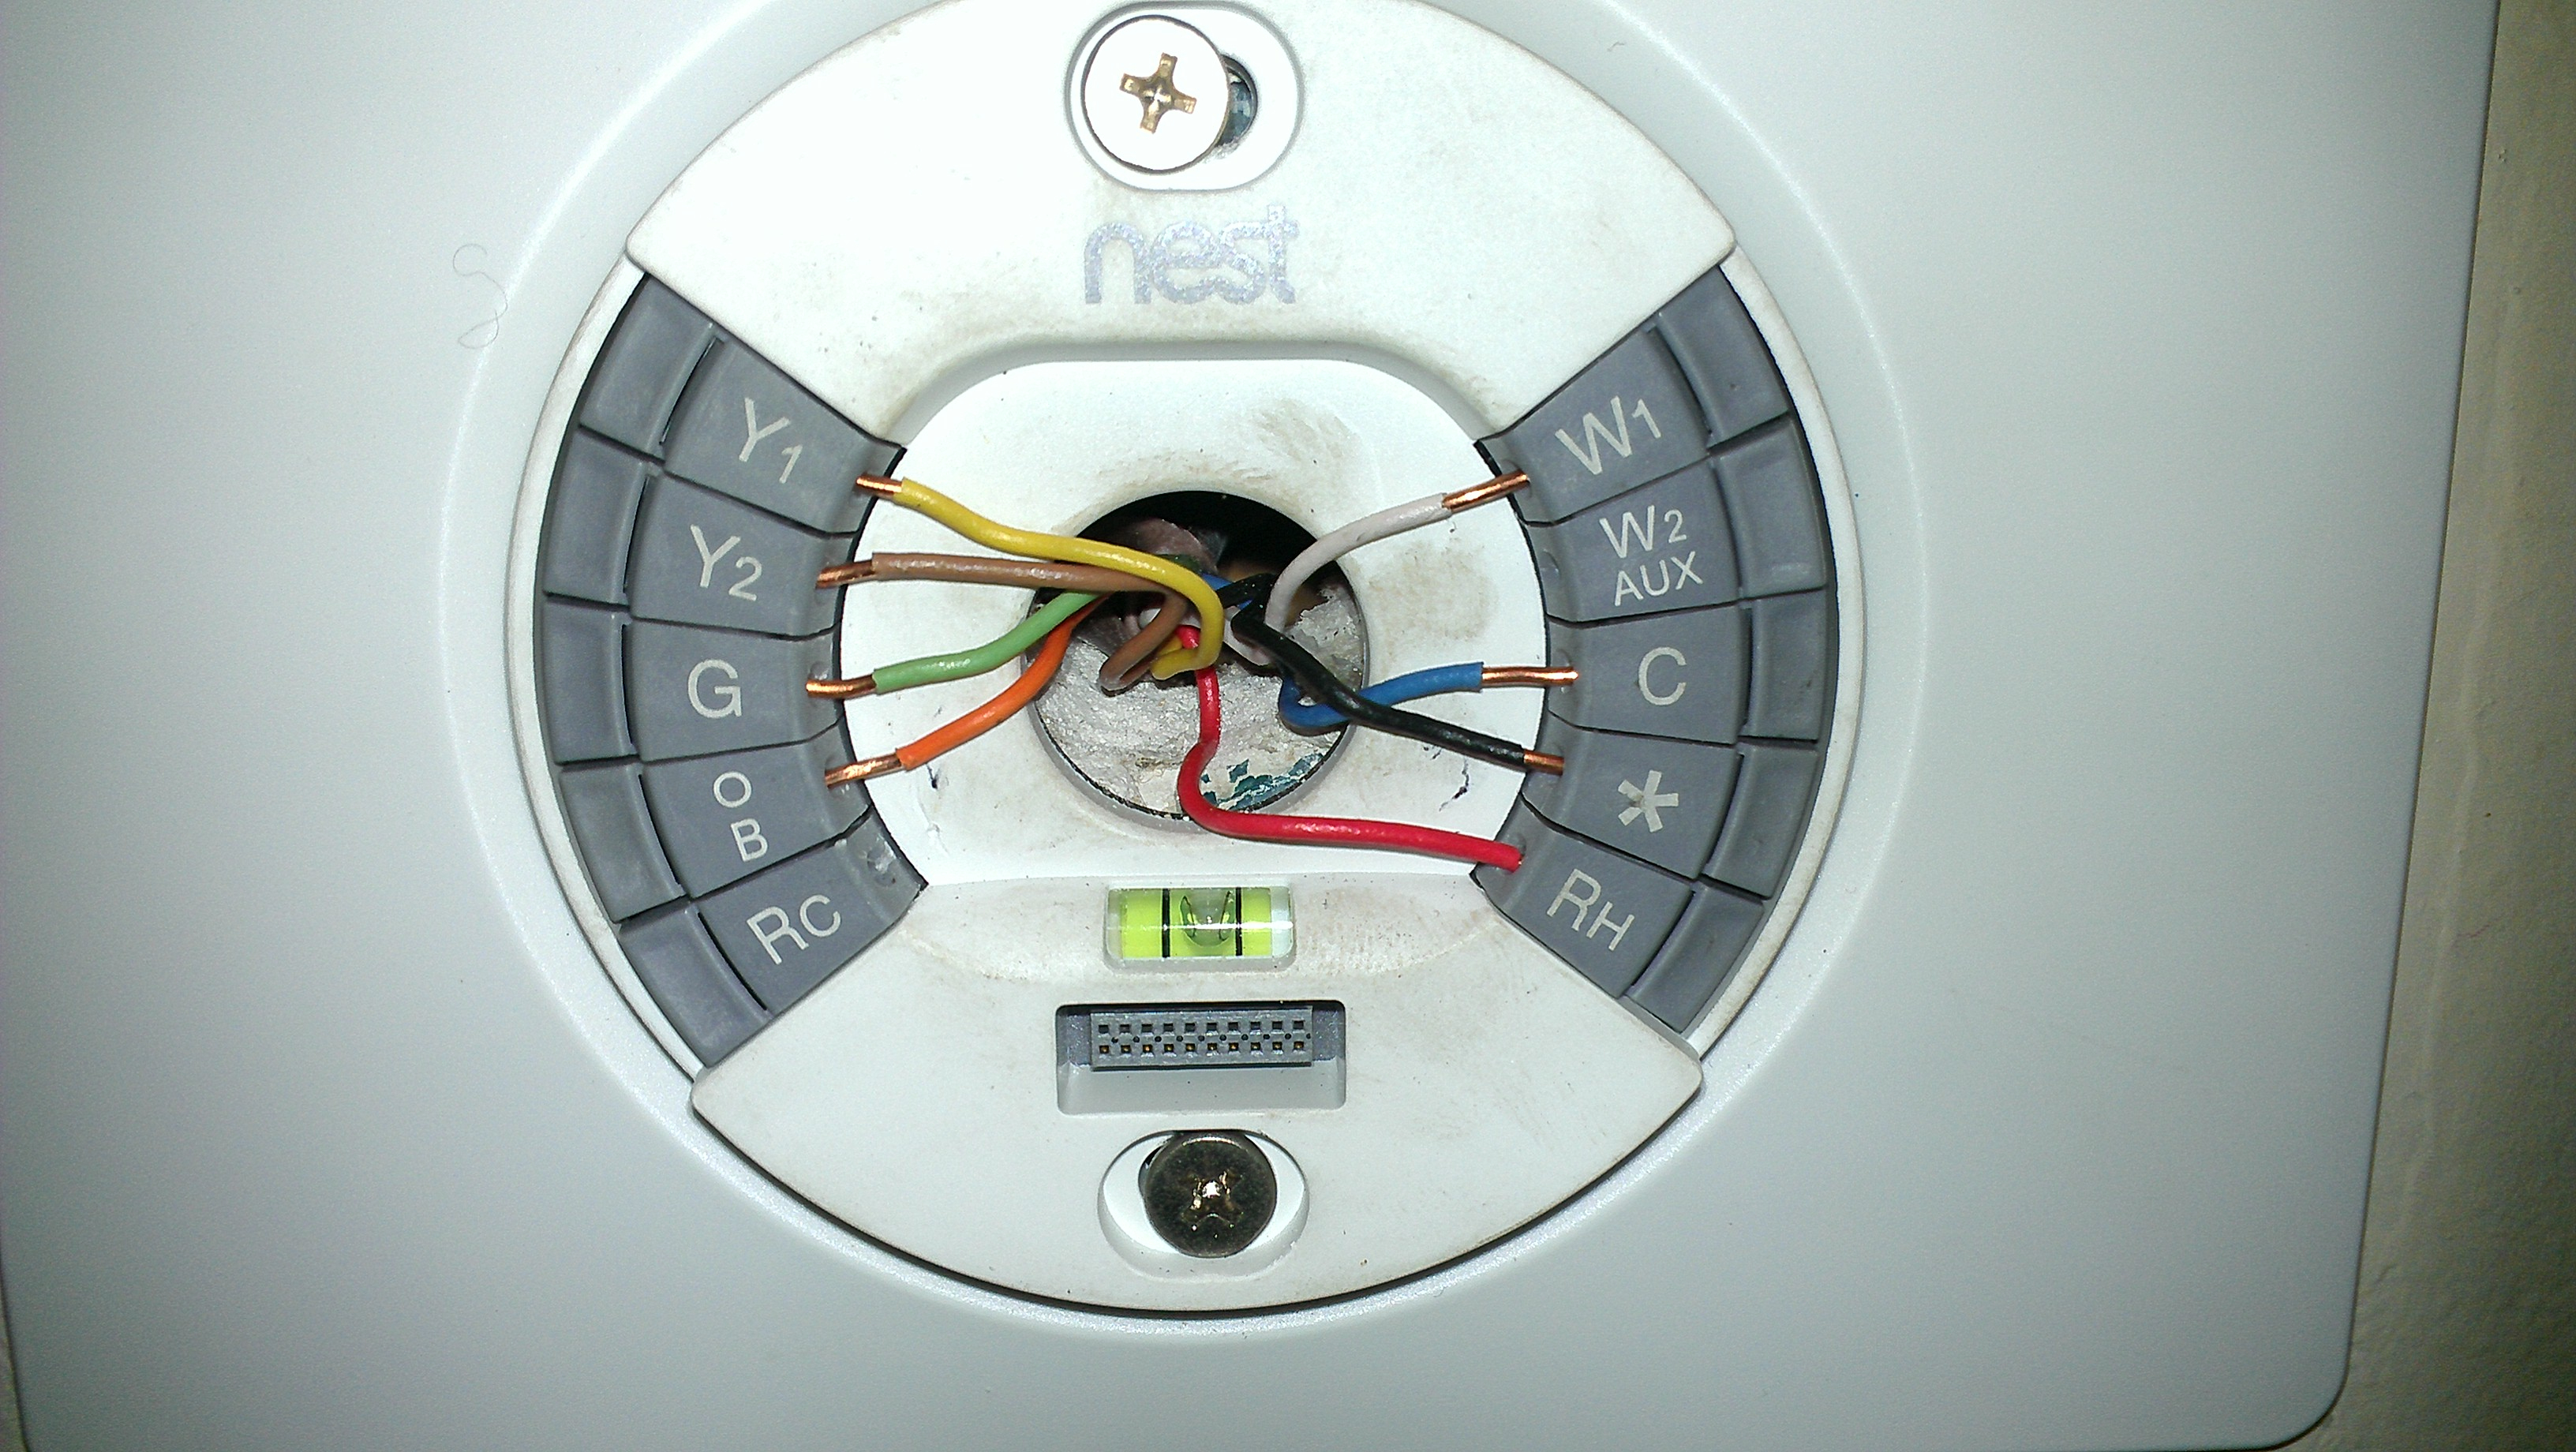 Heat Pump New: Heat Pump Nest - Heat Pump With Nest Wiring Diagram